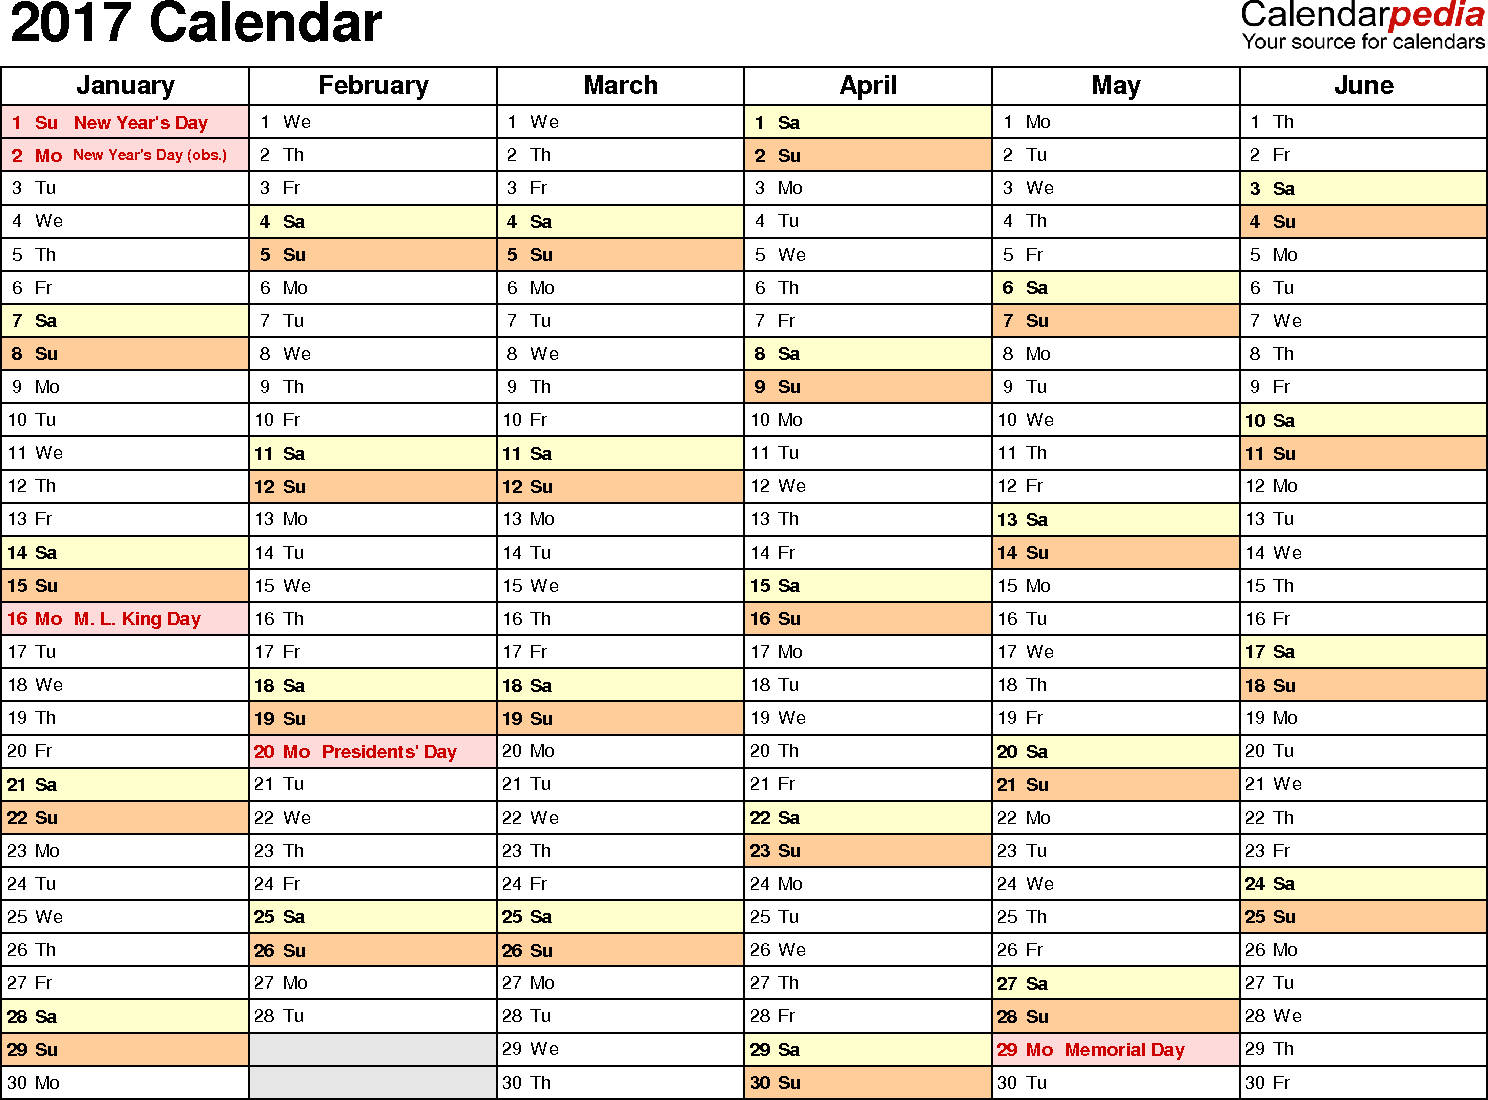 Calendar February 2017 UK, Bank Holidays, Excel/PDF/Word Templates